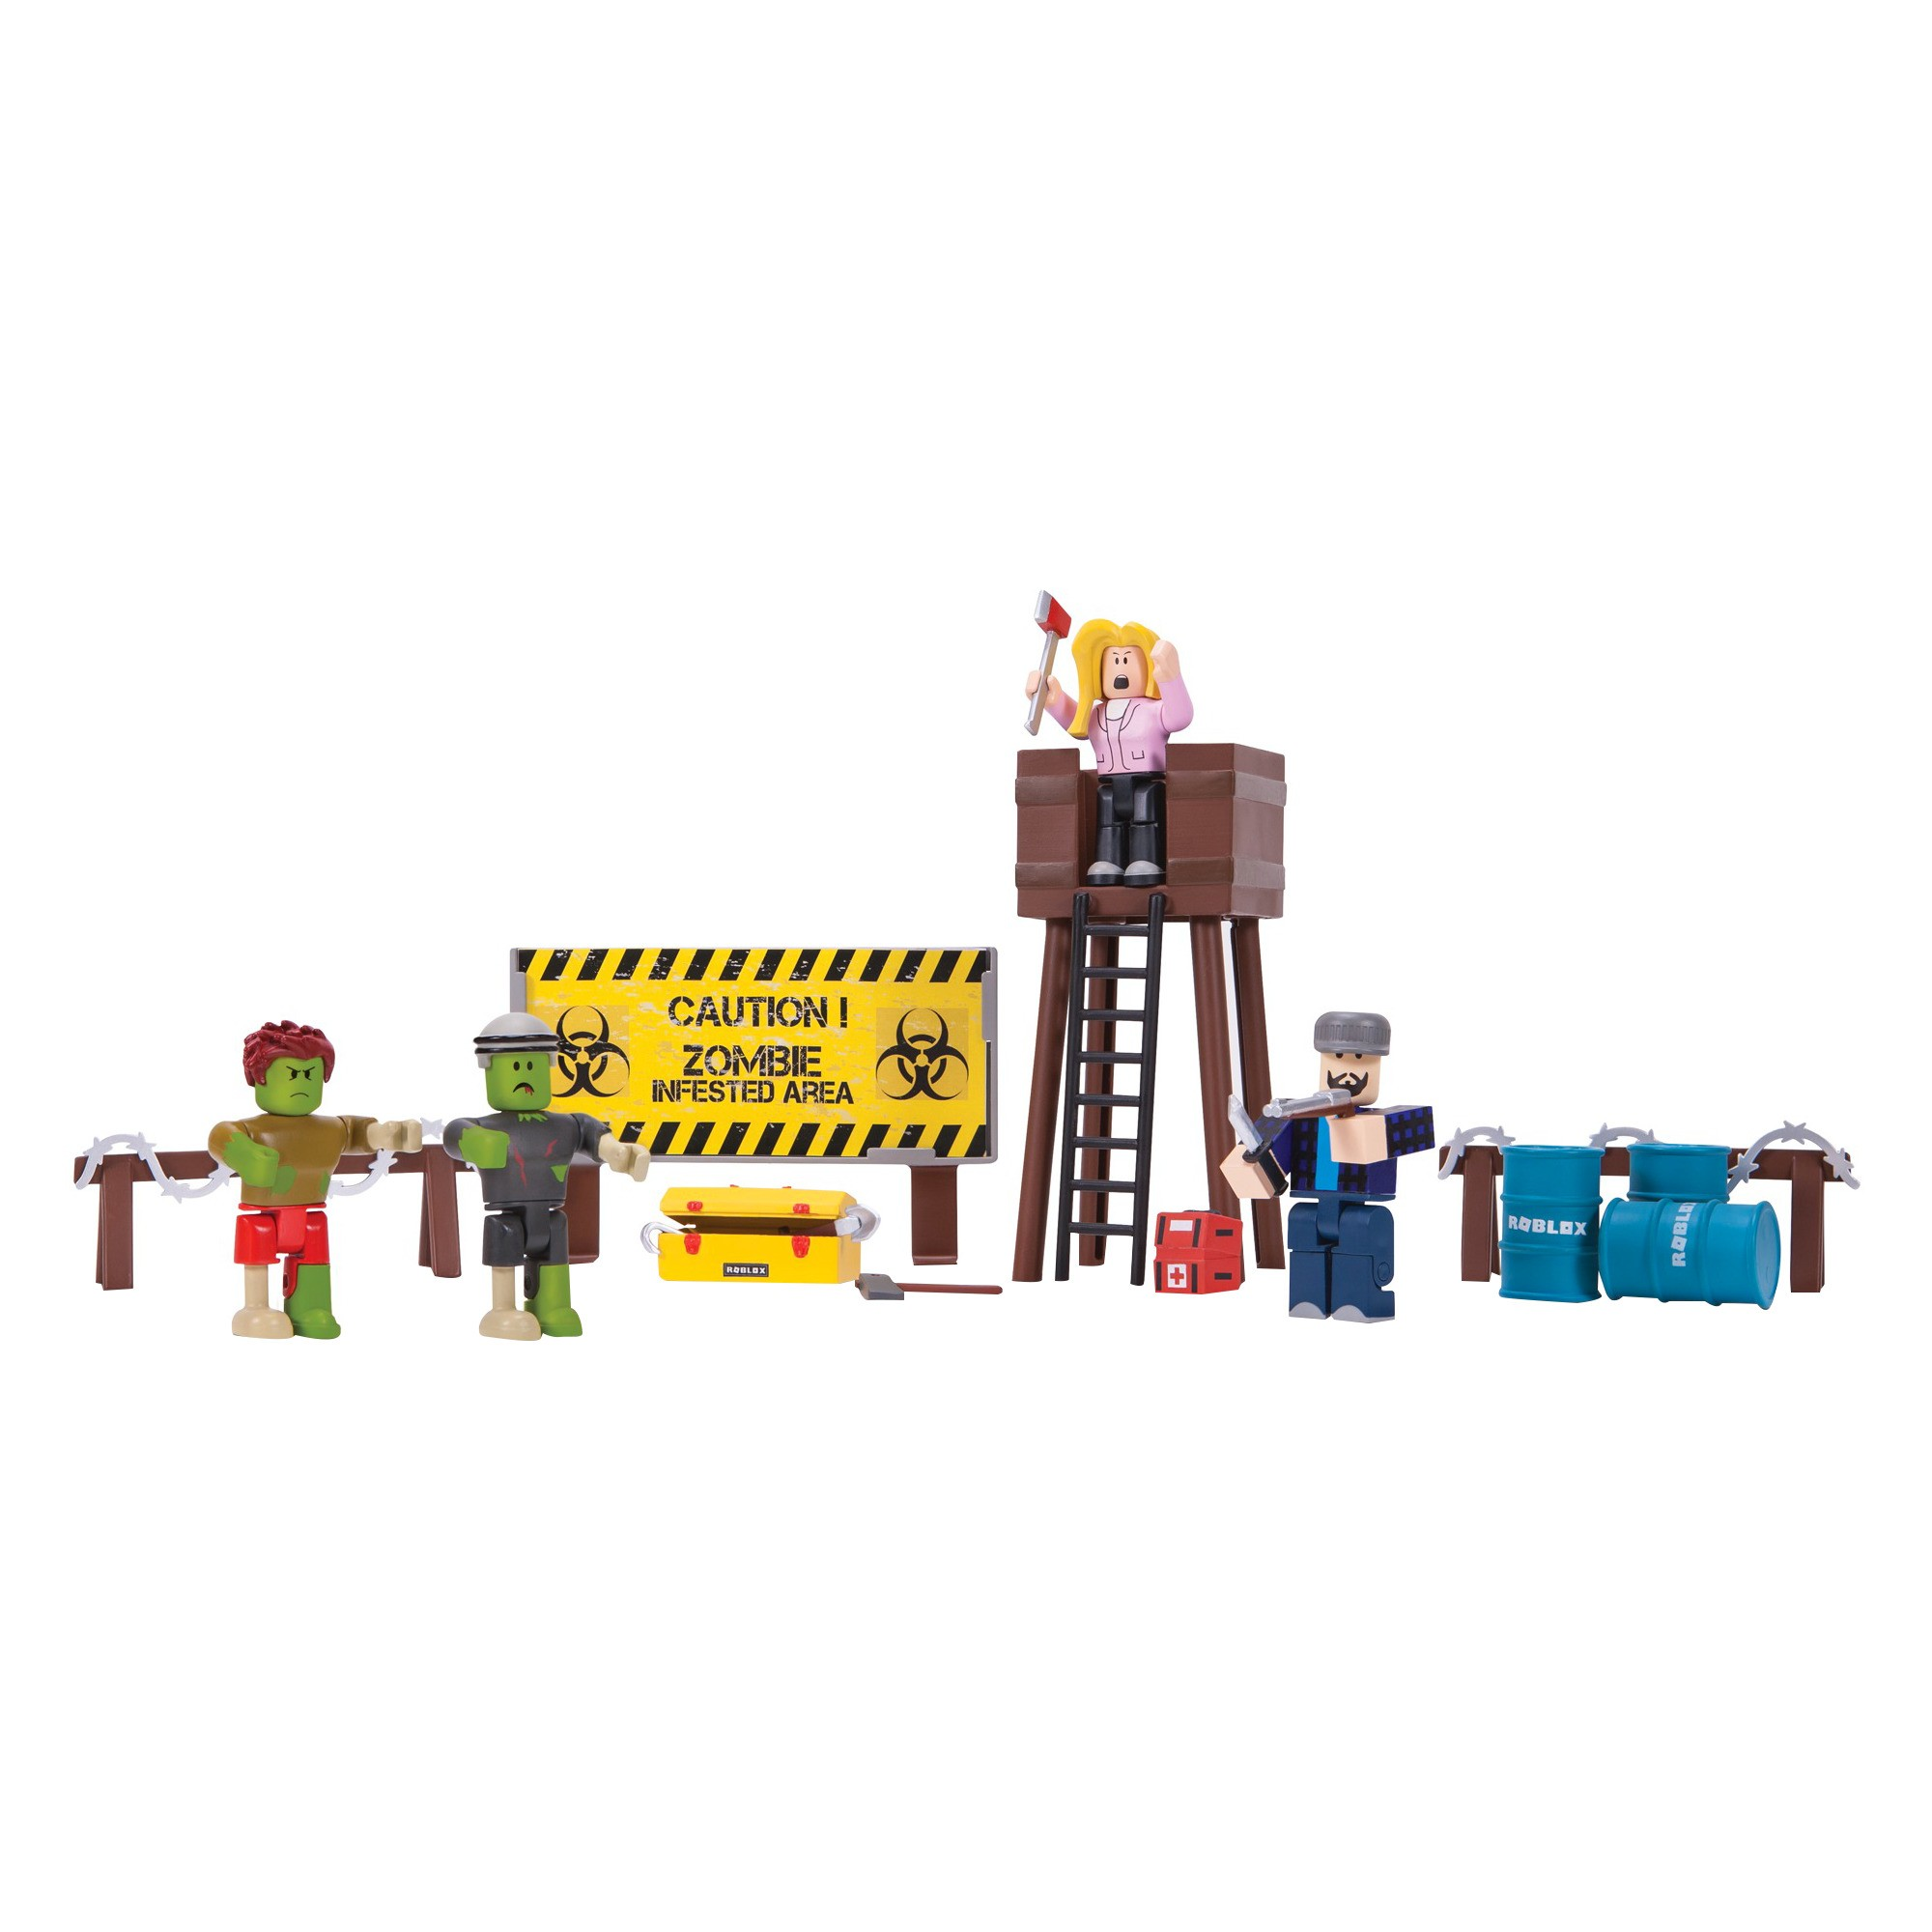 Roblox Zombie Attack Playset | Zombie attack and Products